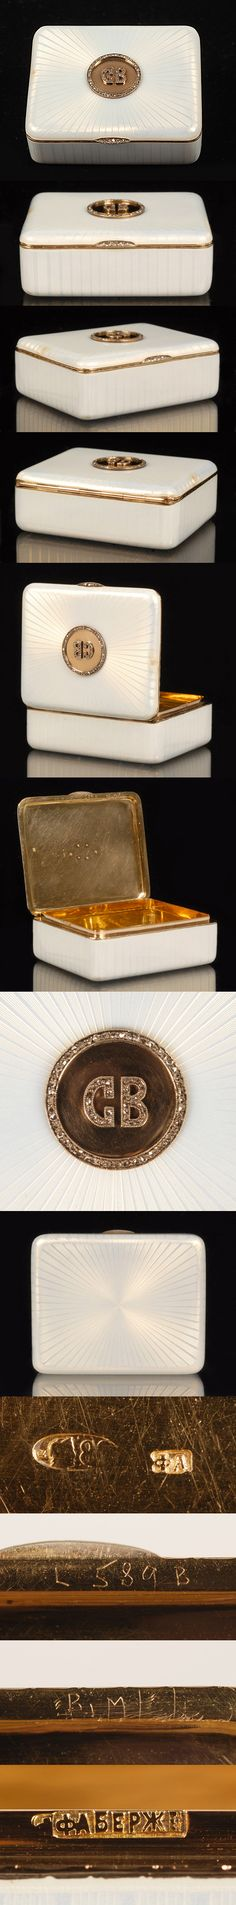 Faberge guilloche enamel~Snuff box with gold gilt crest in the center. #antique #vintage #box